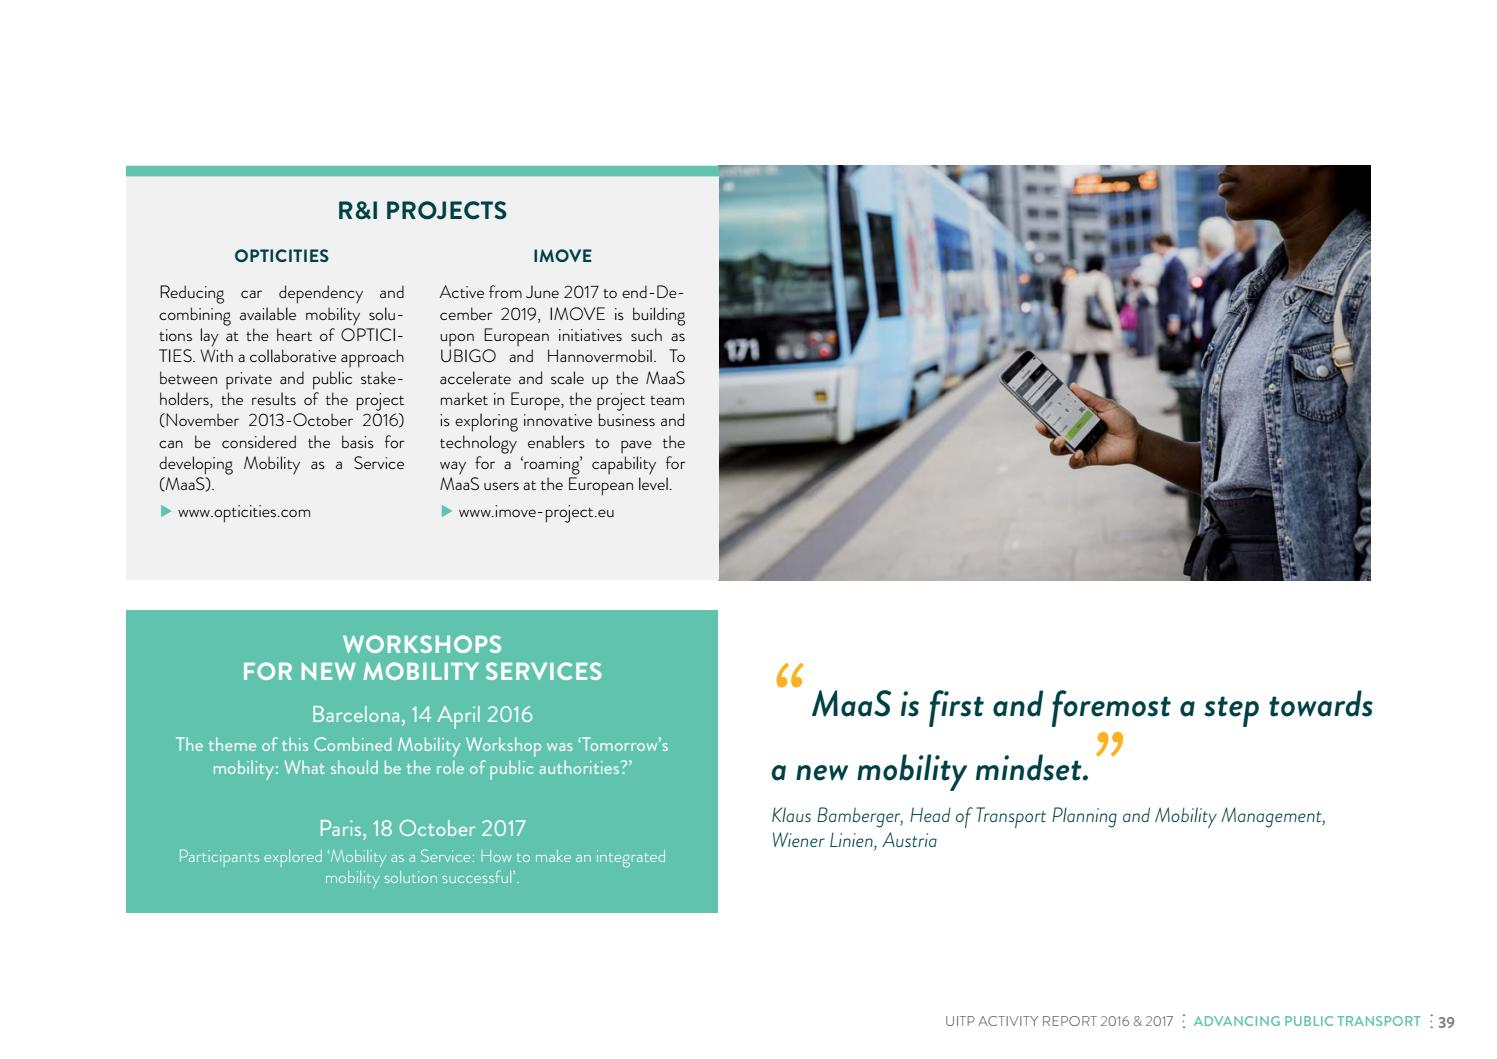 UITP Activity Report 2016 & 2017 by UITP - issuu